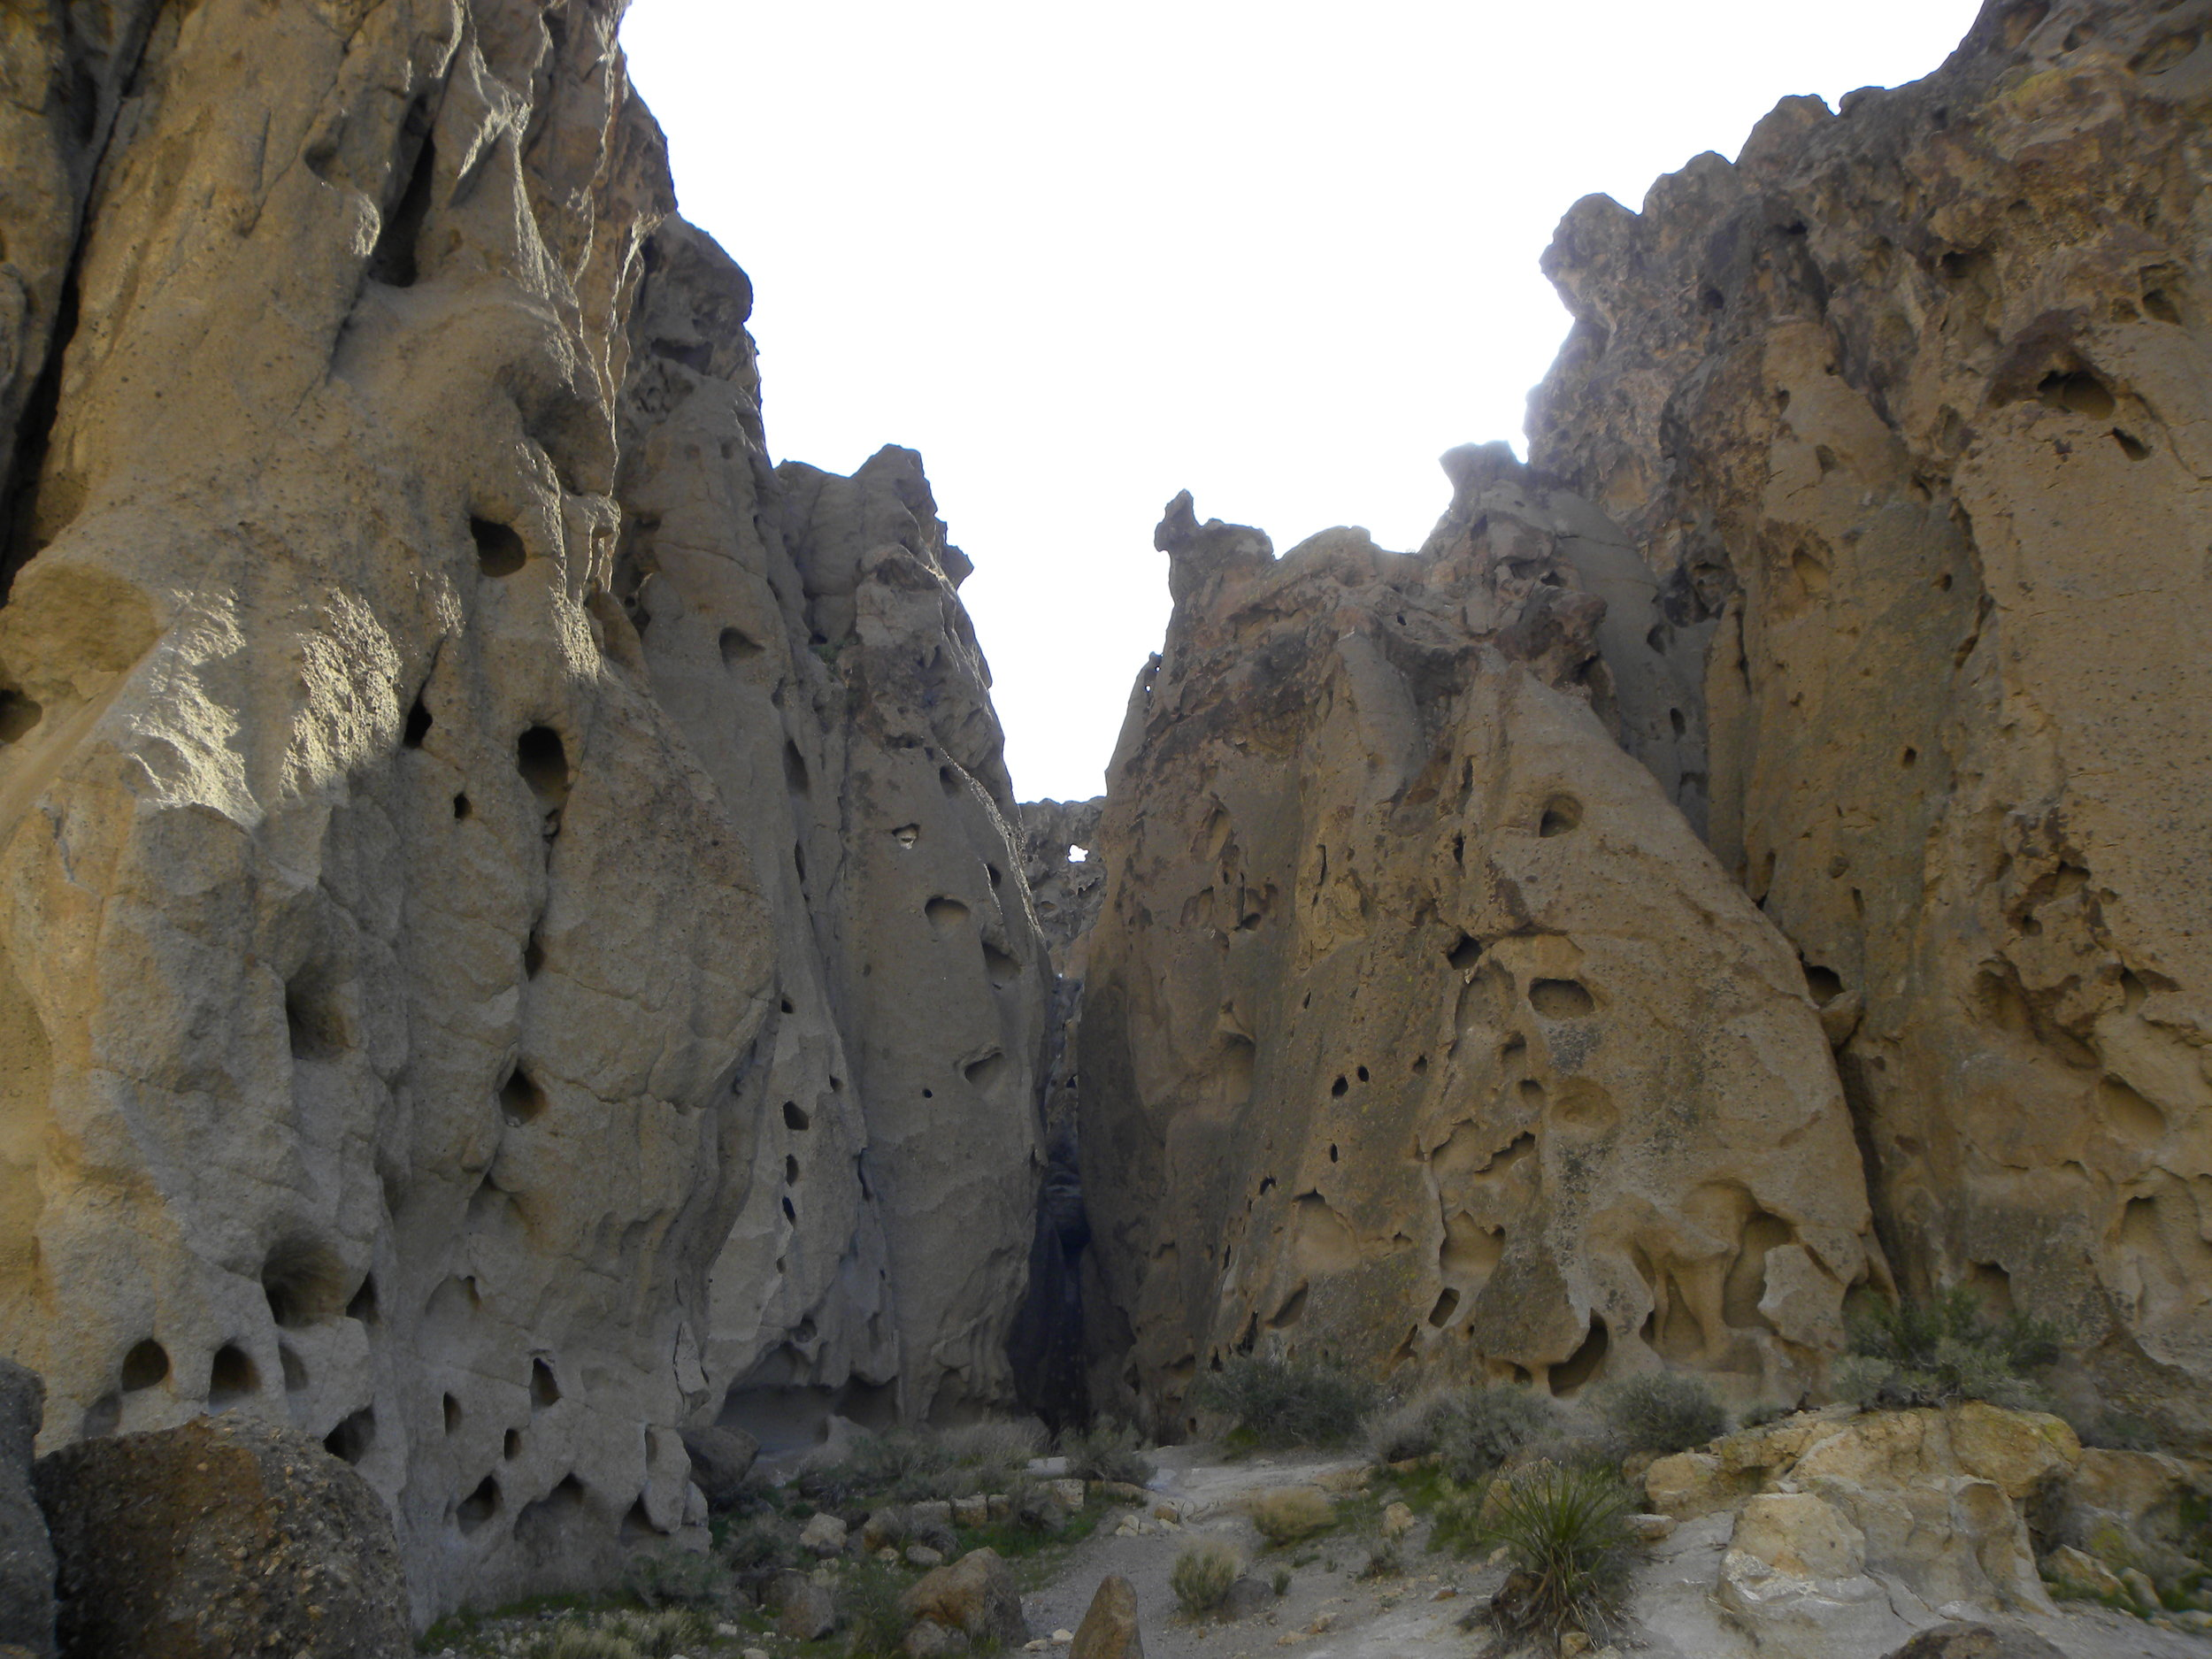 Empty pockets left in the rock are evidence of gas trapped in fallen ash during volcanic activity millions of years ago.